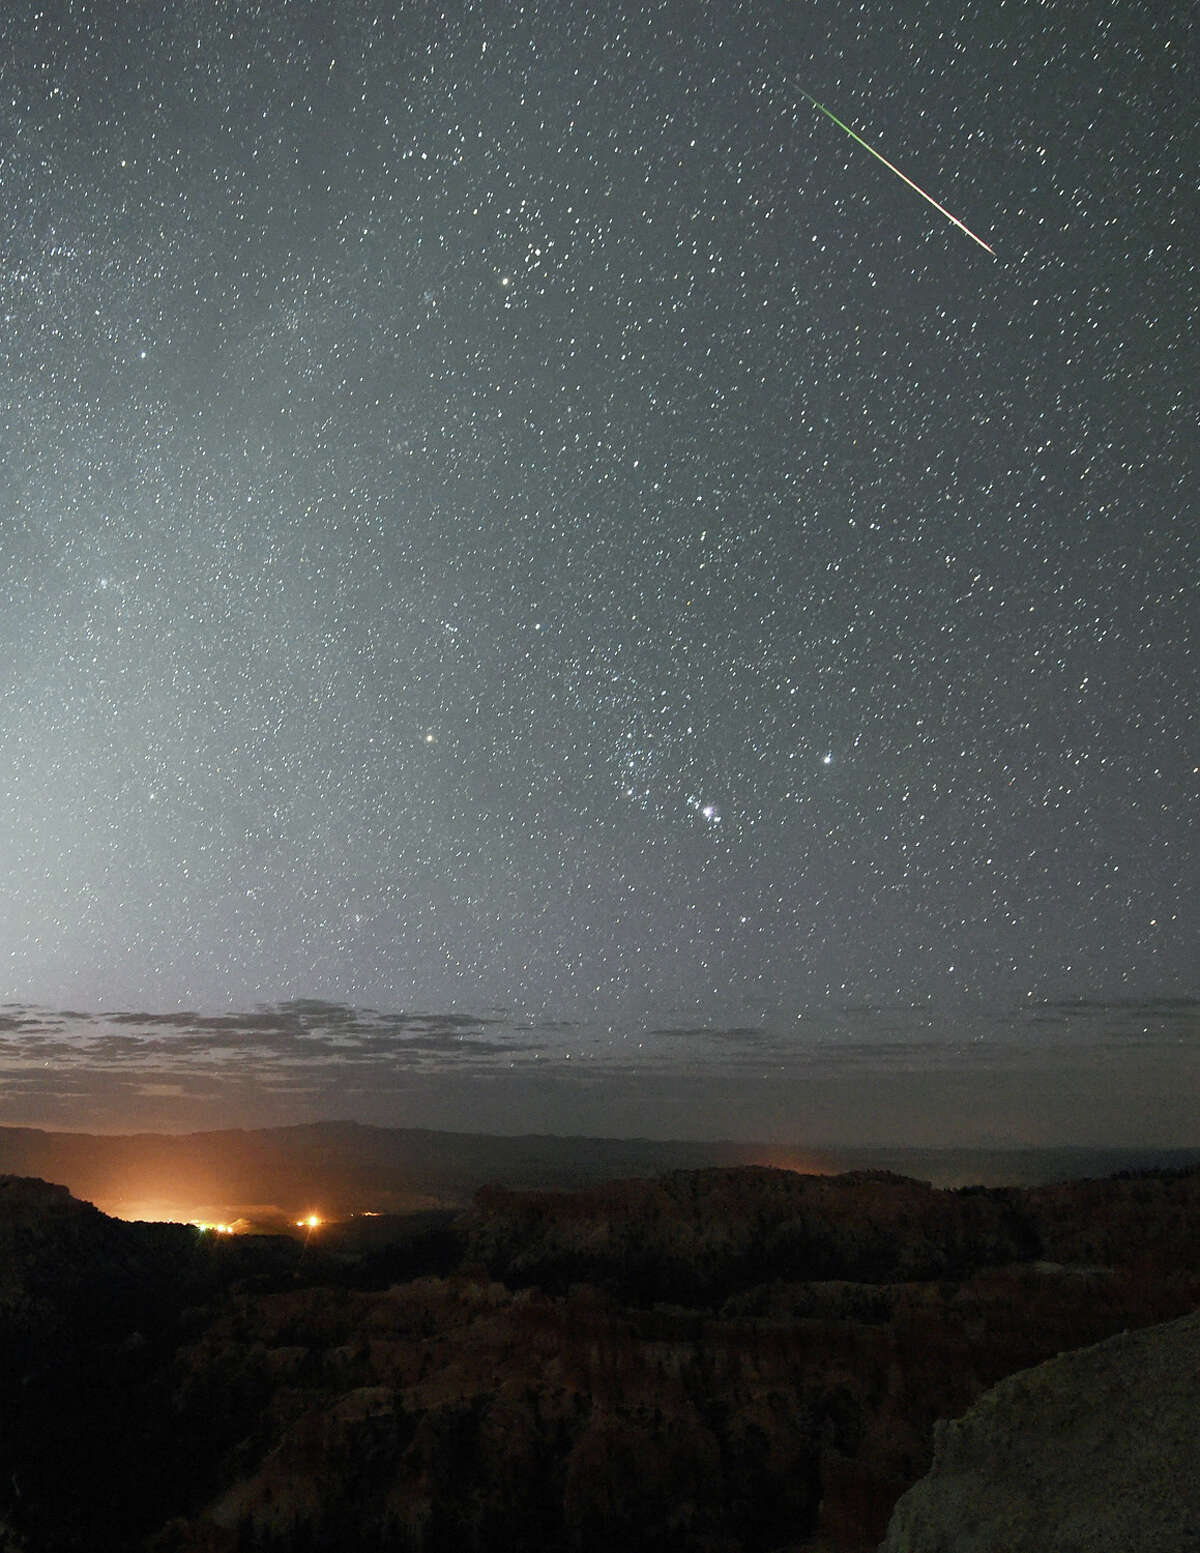 FILE-- A Perseid meteor streaks across the sky above Inspiration Point early on August 12, 2016 in Bryce Canyon National Park, Utah. A new paper by a trio of Harvard University researchers argues that we all might be immigrants from deep space, brought to Earth via a mechanism called panspermia.